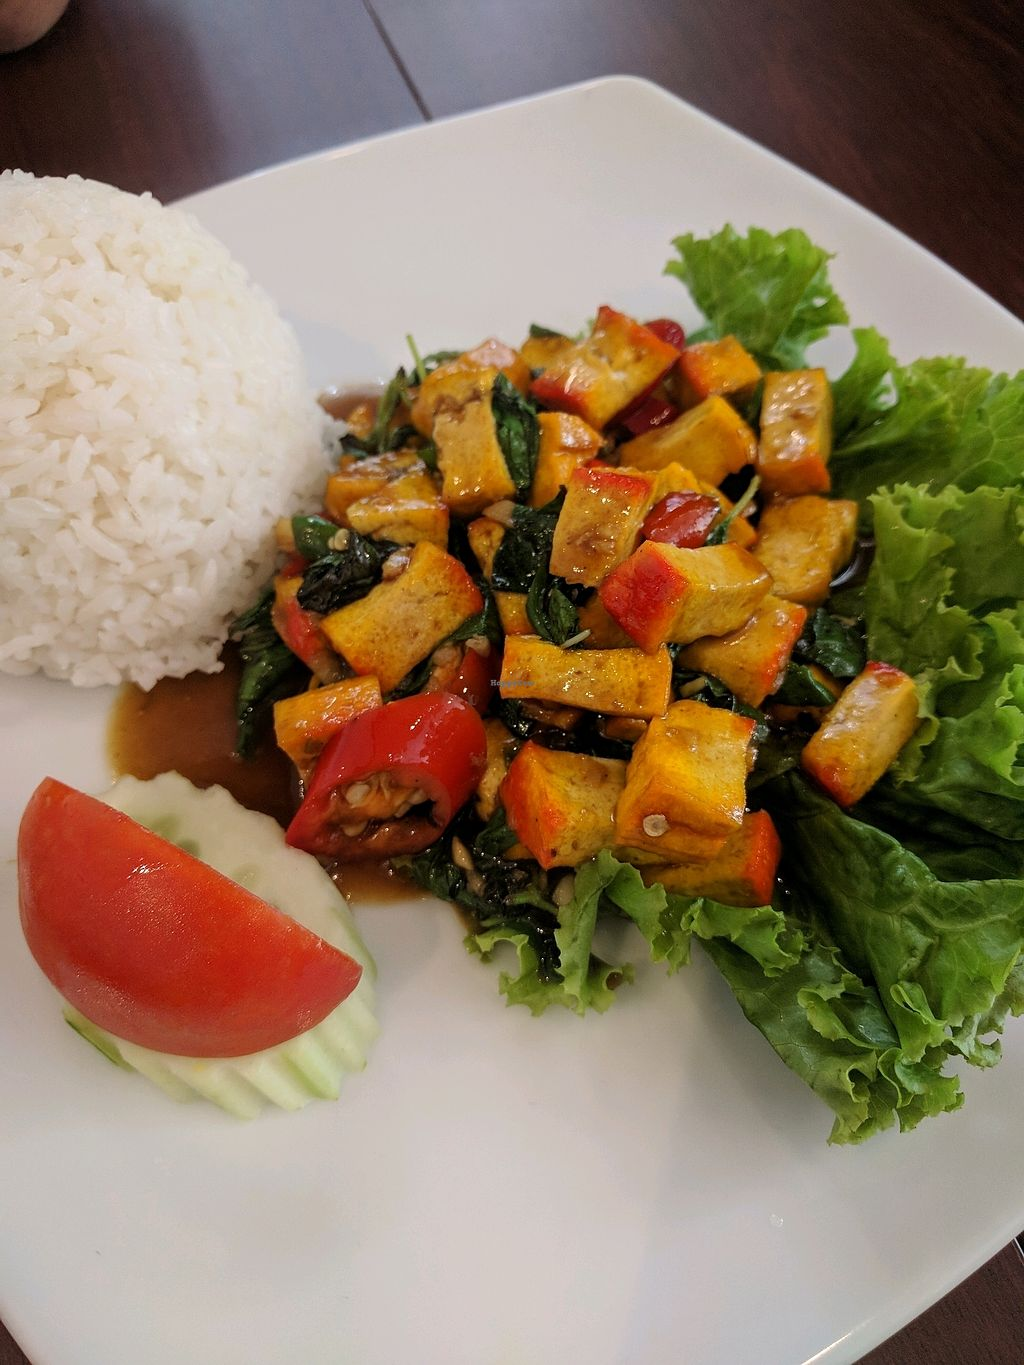 "Photo of ThaiExpress  by <a href=""/members/profile/VeganSoapDude"">VeganSoapDude</a> <br/>Spicy tofu <br/> March 6, 2018  - <a href='/contact/abuse/image/113826/367557'>Report</a>"